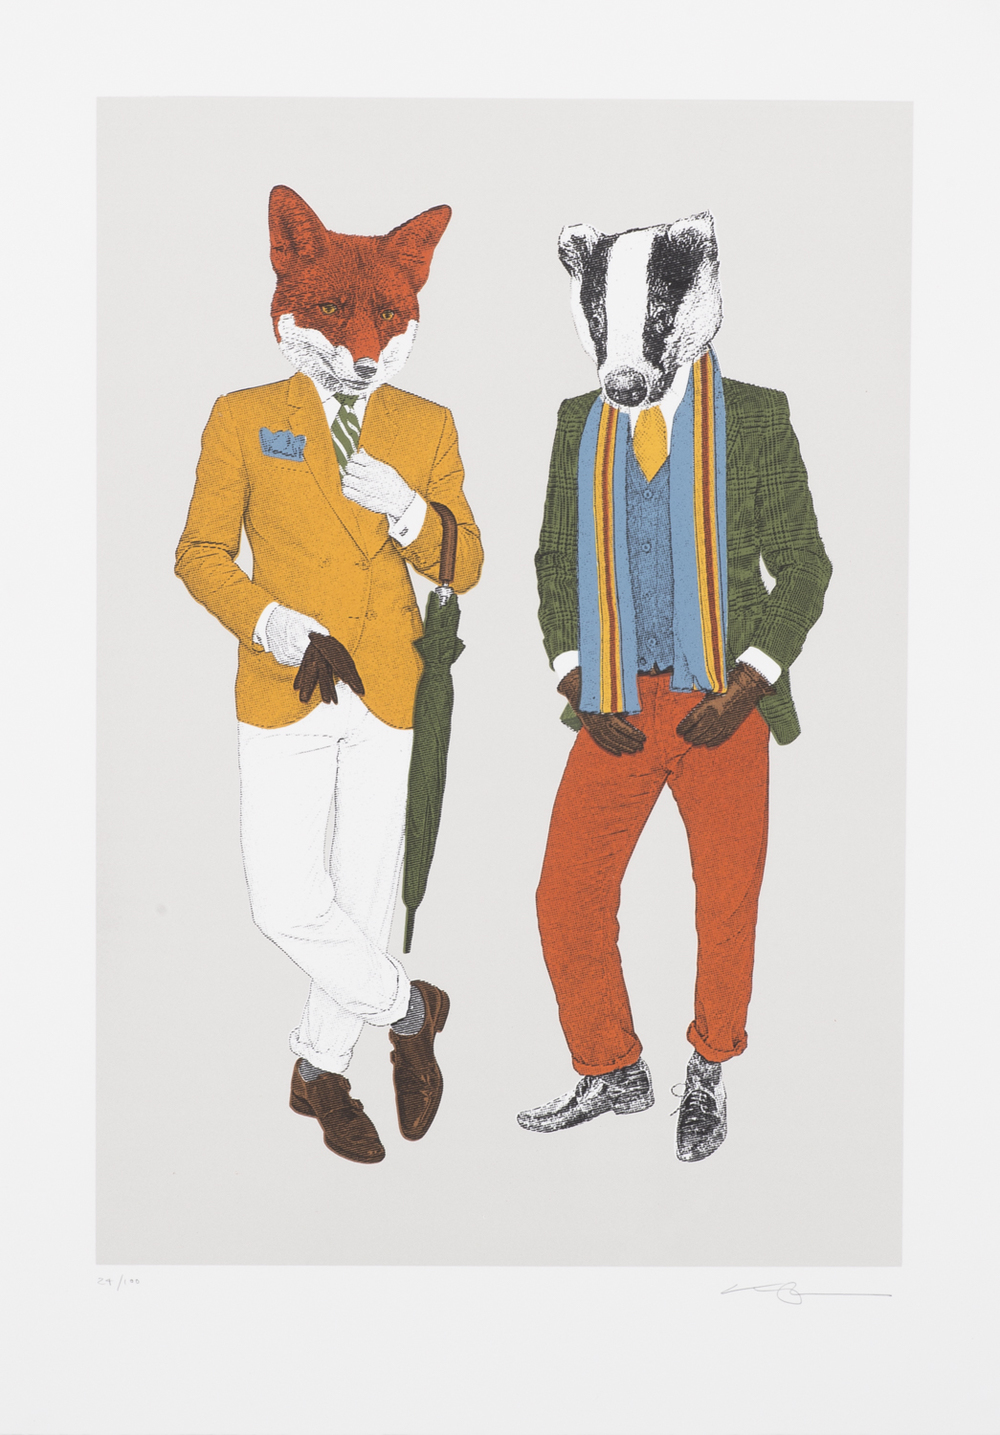 The Fox & Badger